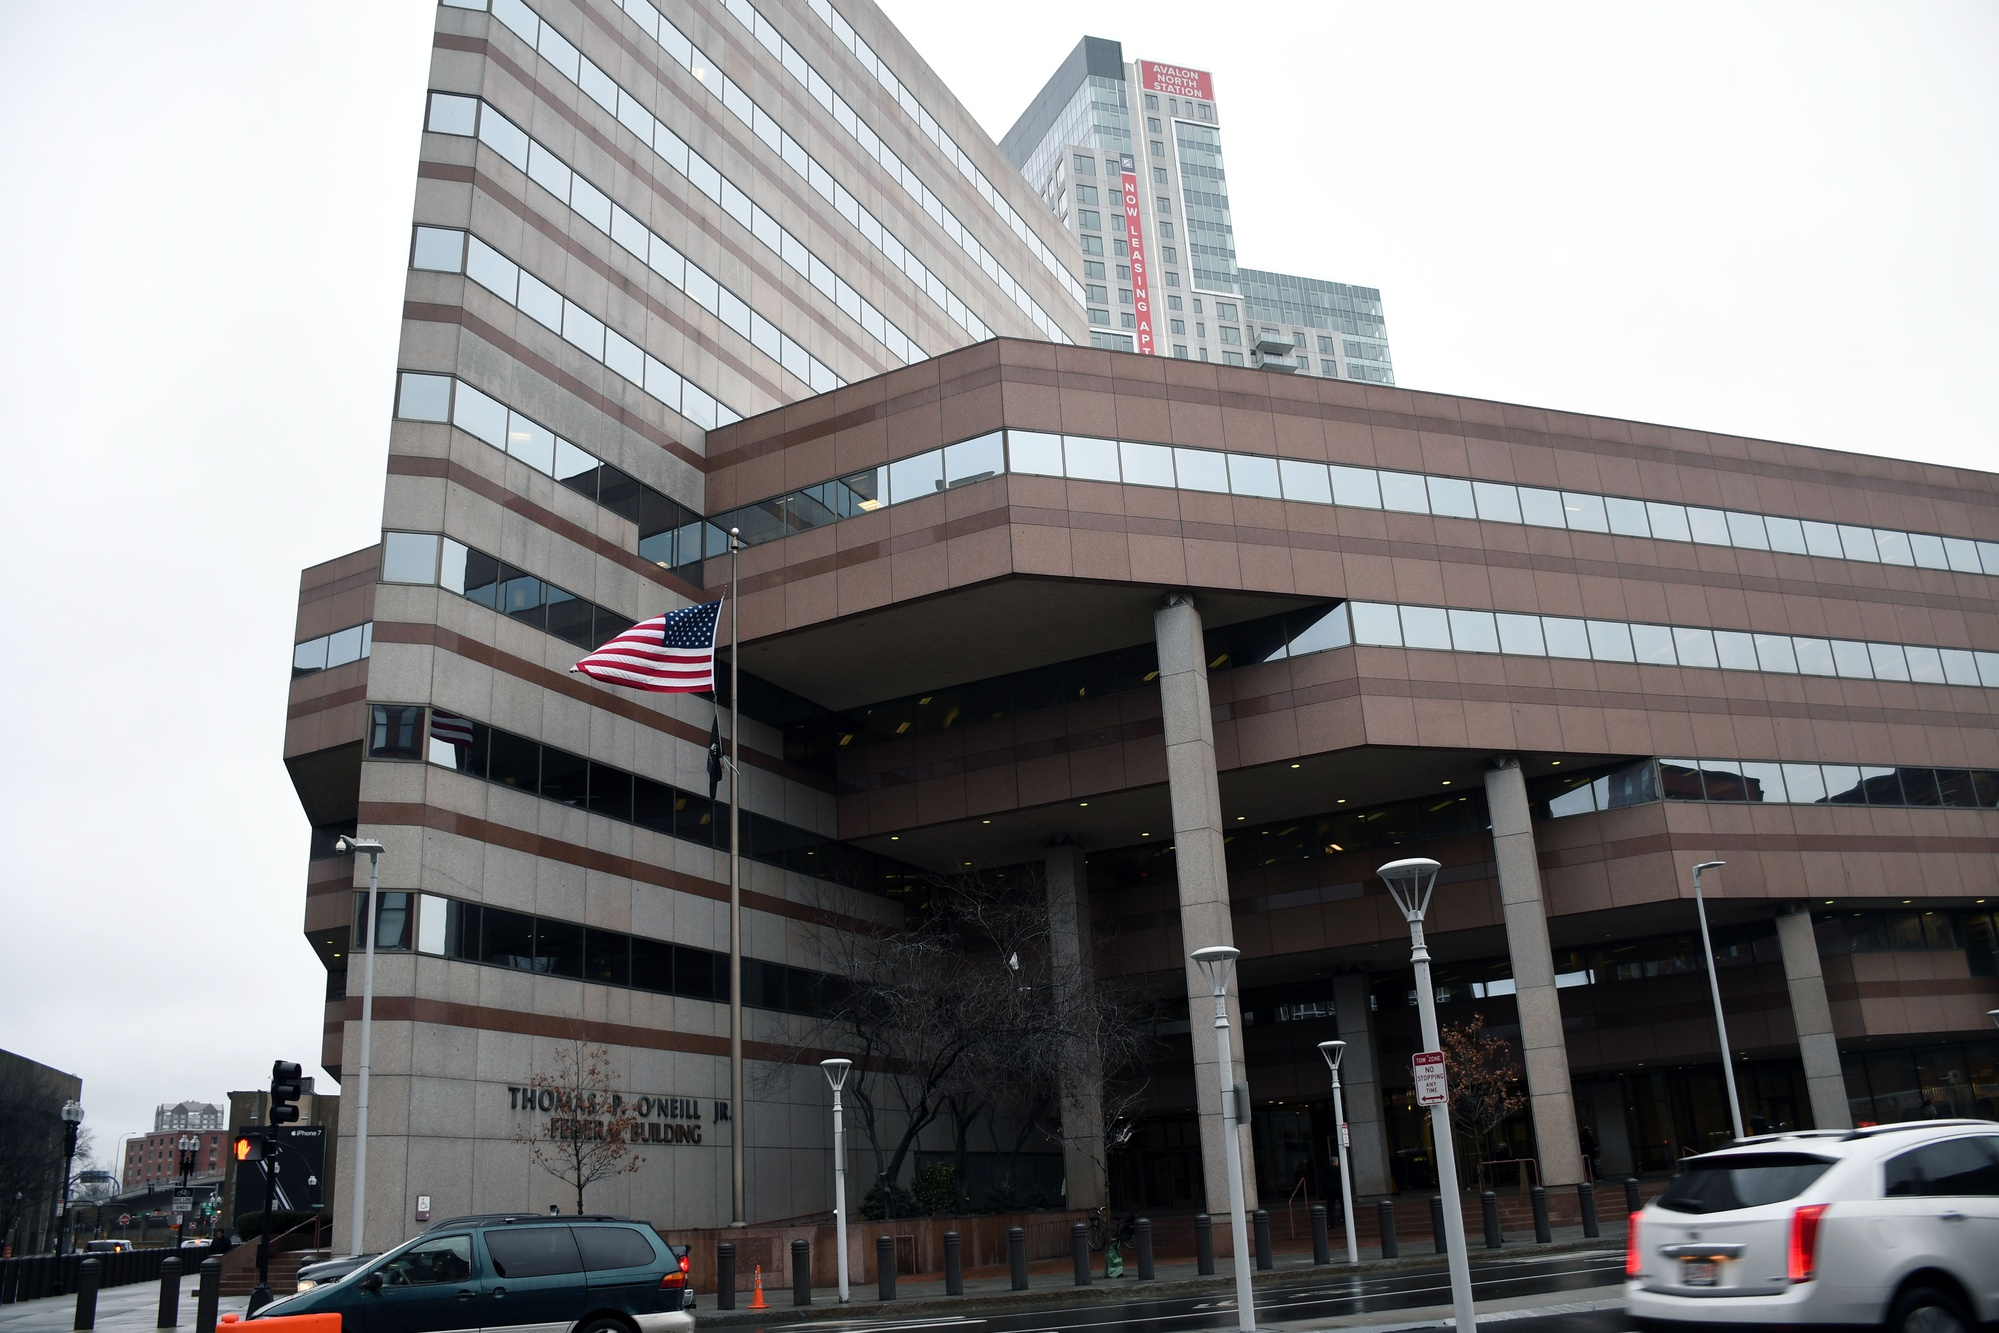 The National Labor Relations Board's Boston regional office is housed in the Thomas P. O'Neill Jr. Federal Building in Boston.